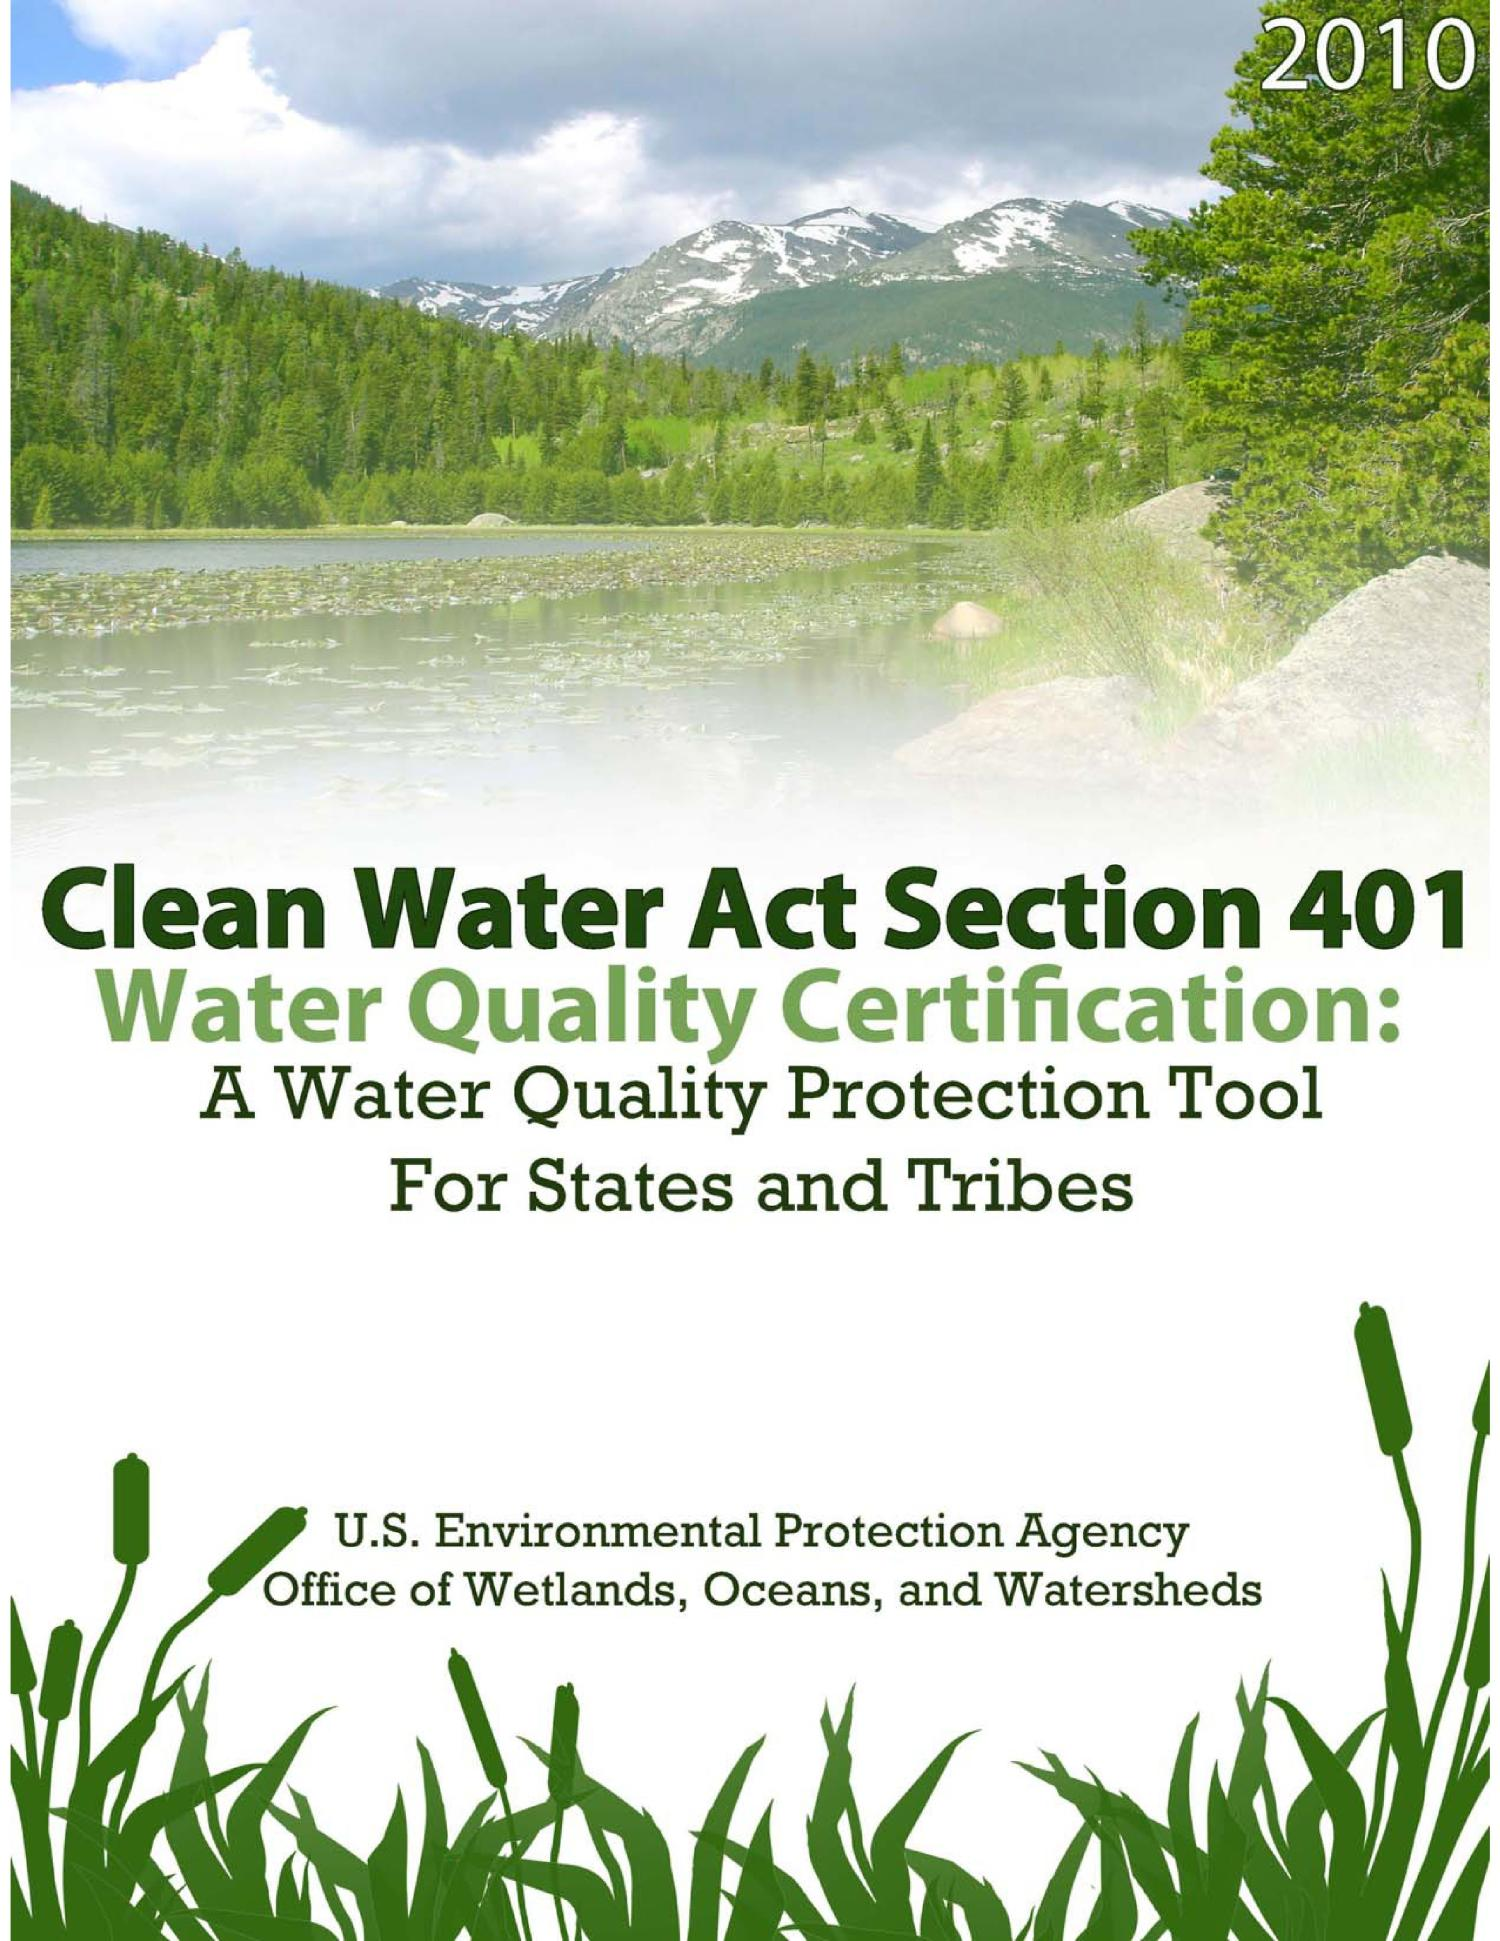 Clean Water Act Section 401 Water Quality Certification: A ...